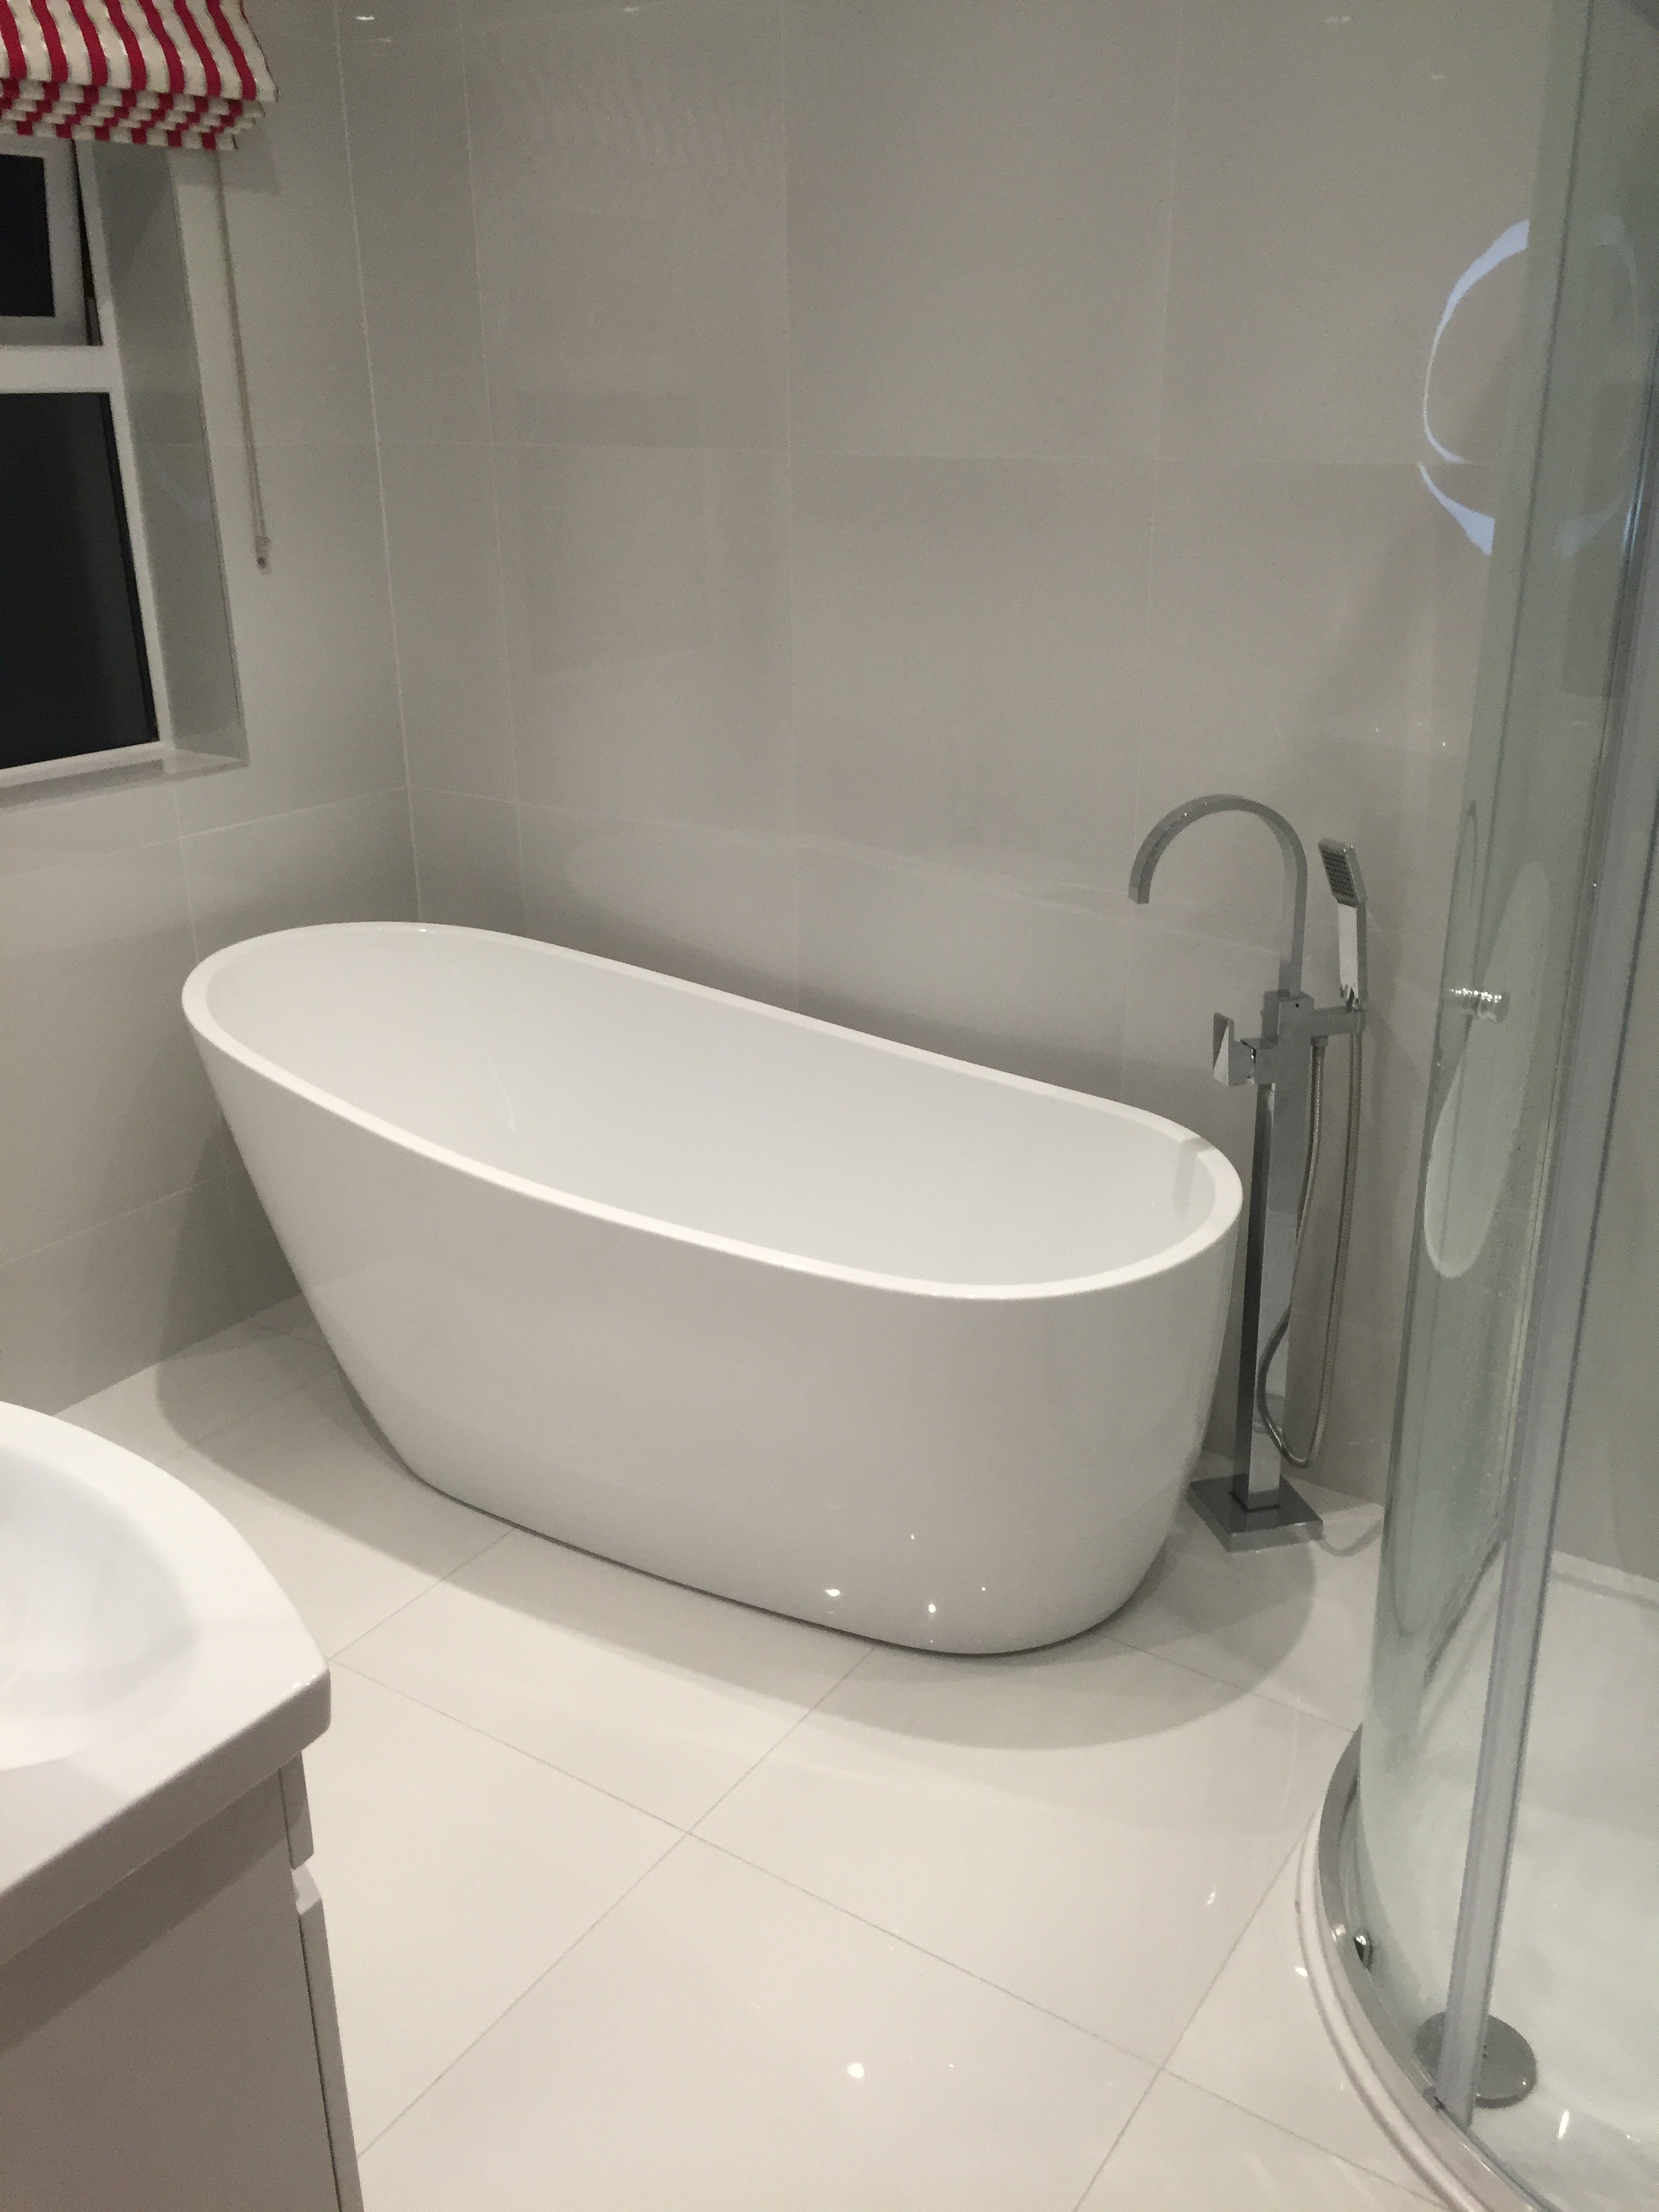 Bathroom design gallery by cleary bathroom design dublin for Bathroom design dublin